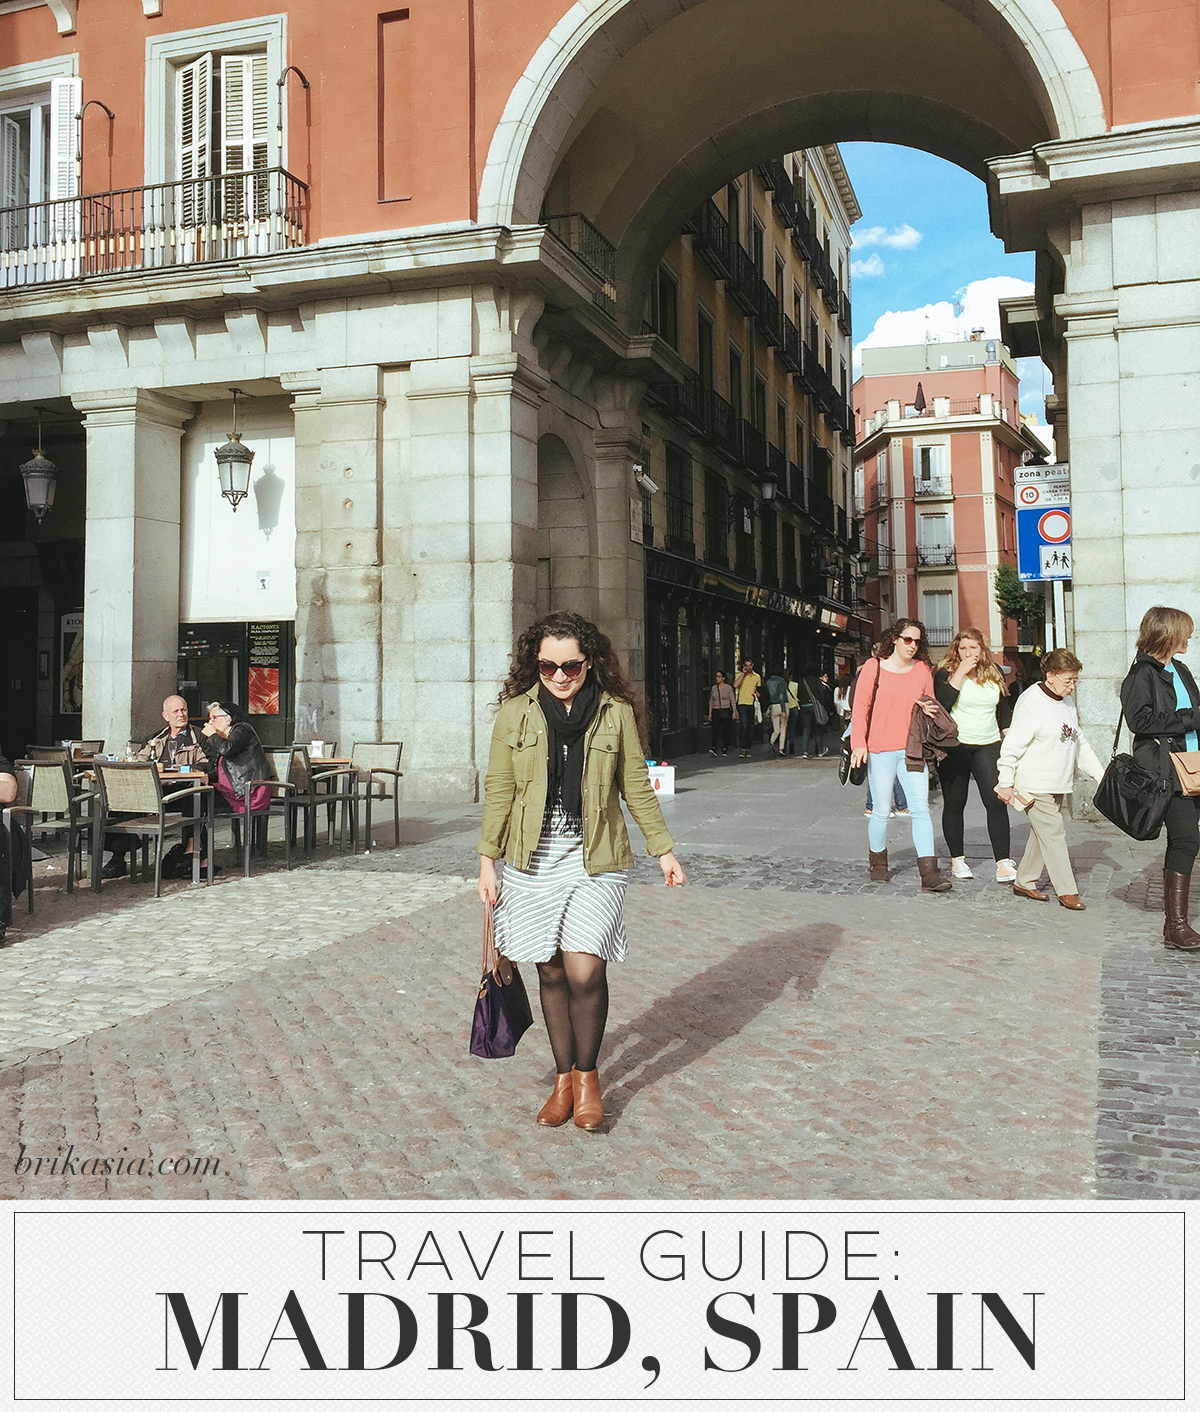 Madrid Travel Guide, things to do in madrid, unique things to do in madrid, non tourist stuff to do madrid, plaza mayor